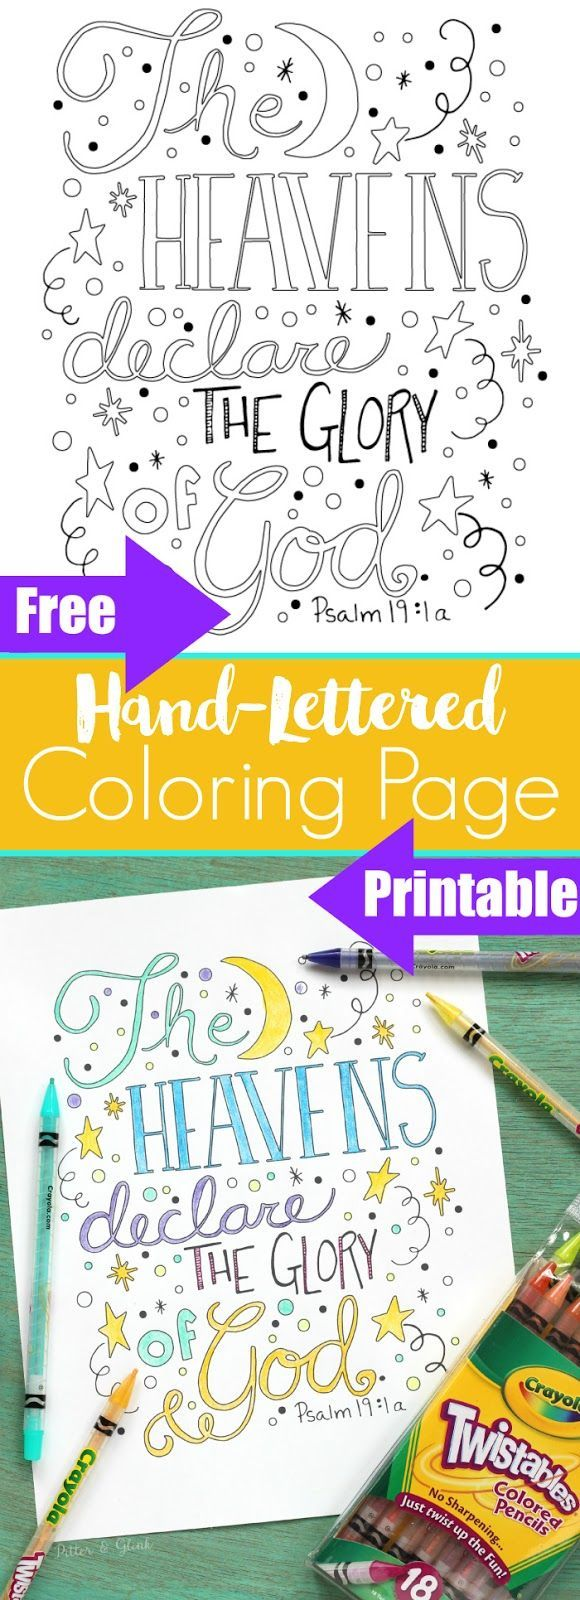 Hand Lettered Bible Verse Coloring Sheet Printable Download This Free Page Thats